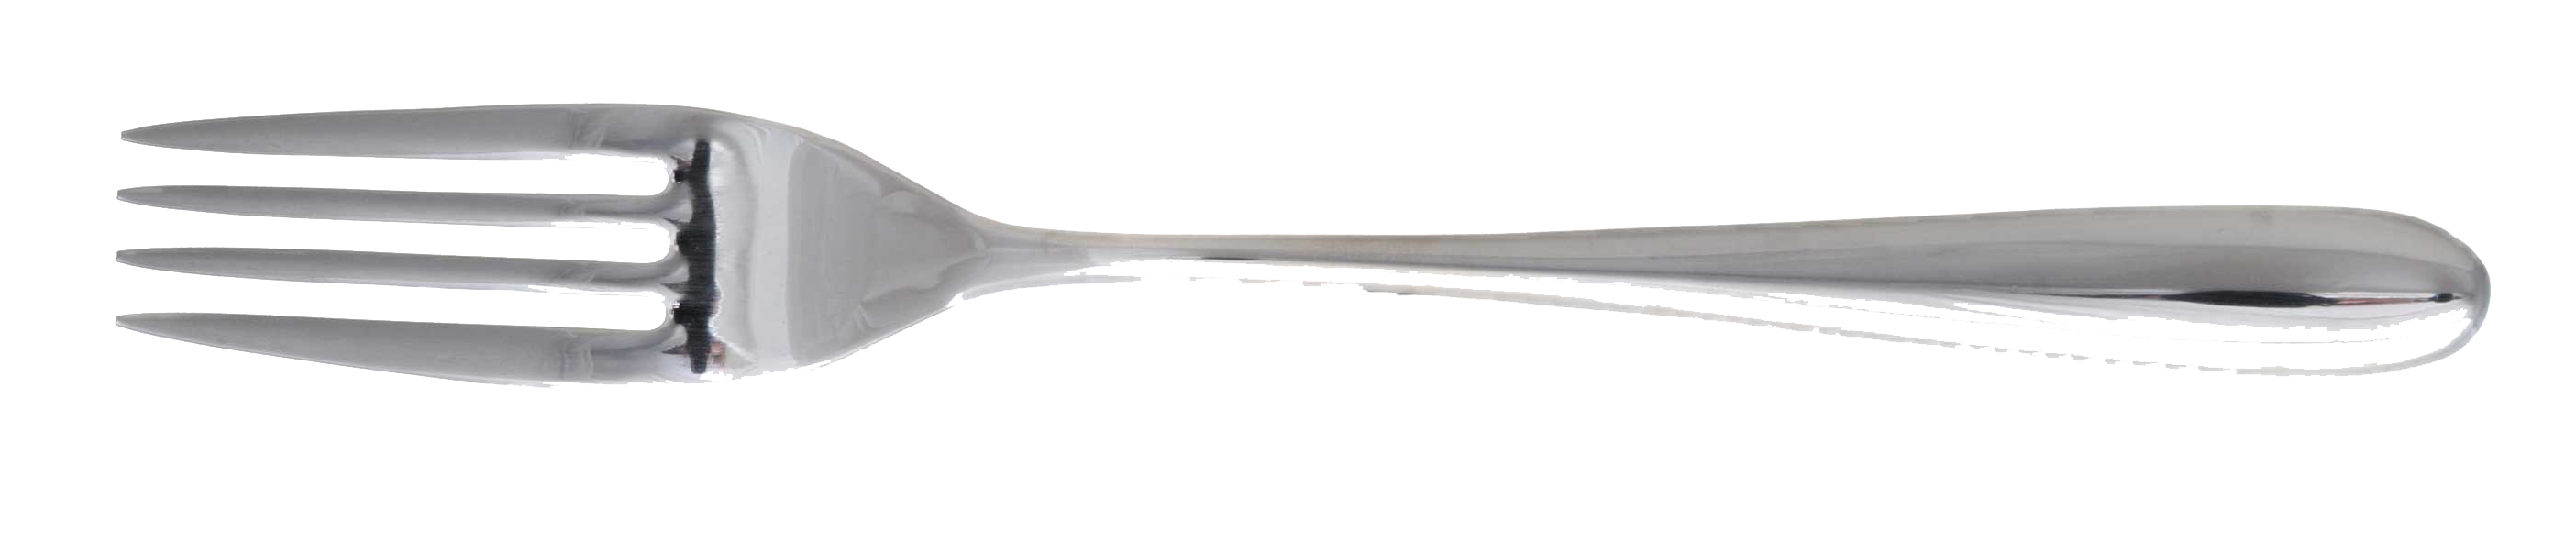 Fork Png Photos - Fork, Transparent background PNG HD thumbnail